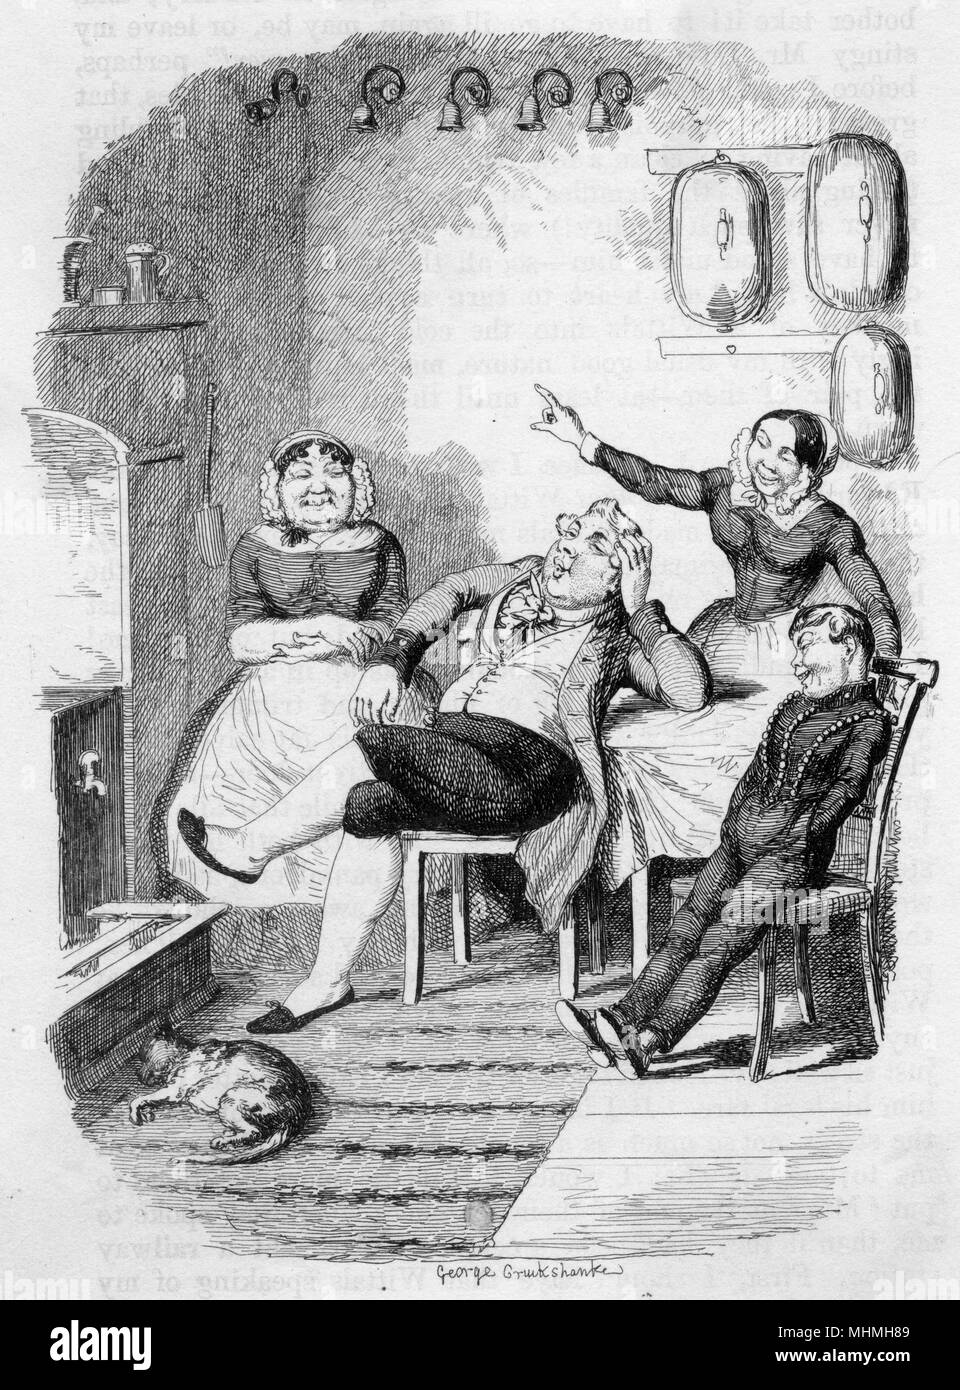 In the servants' hall - 'Oh ah ! Let 'em ring again !'       Date: 1849 - Stock Image